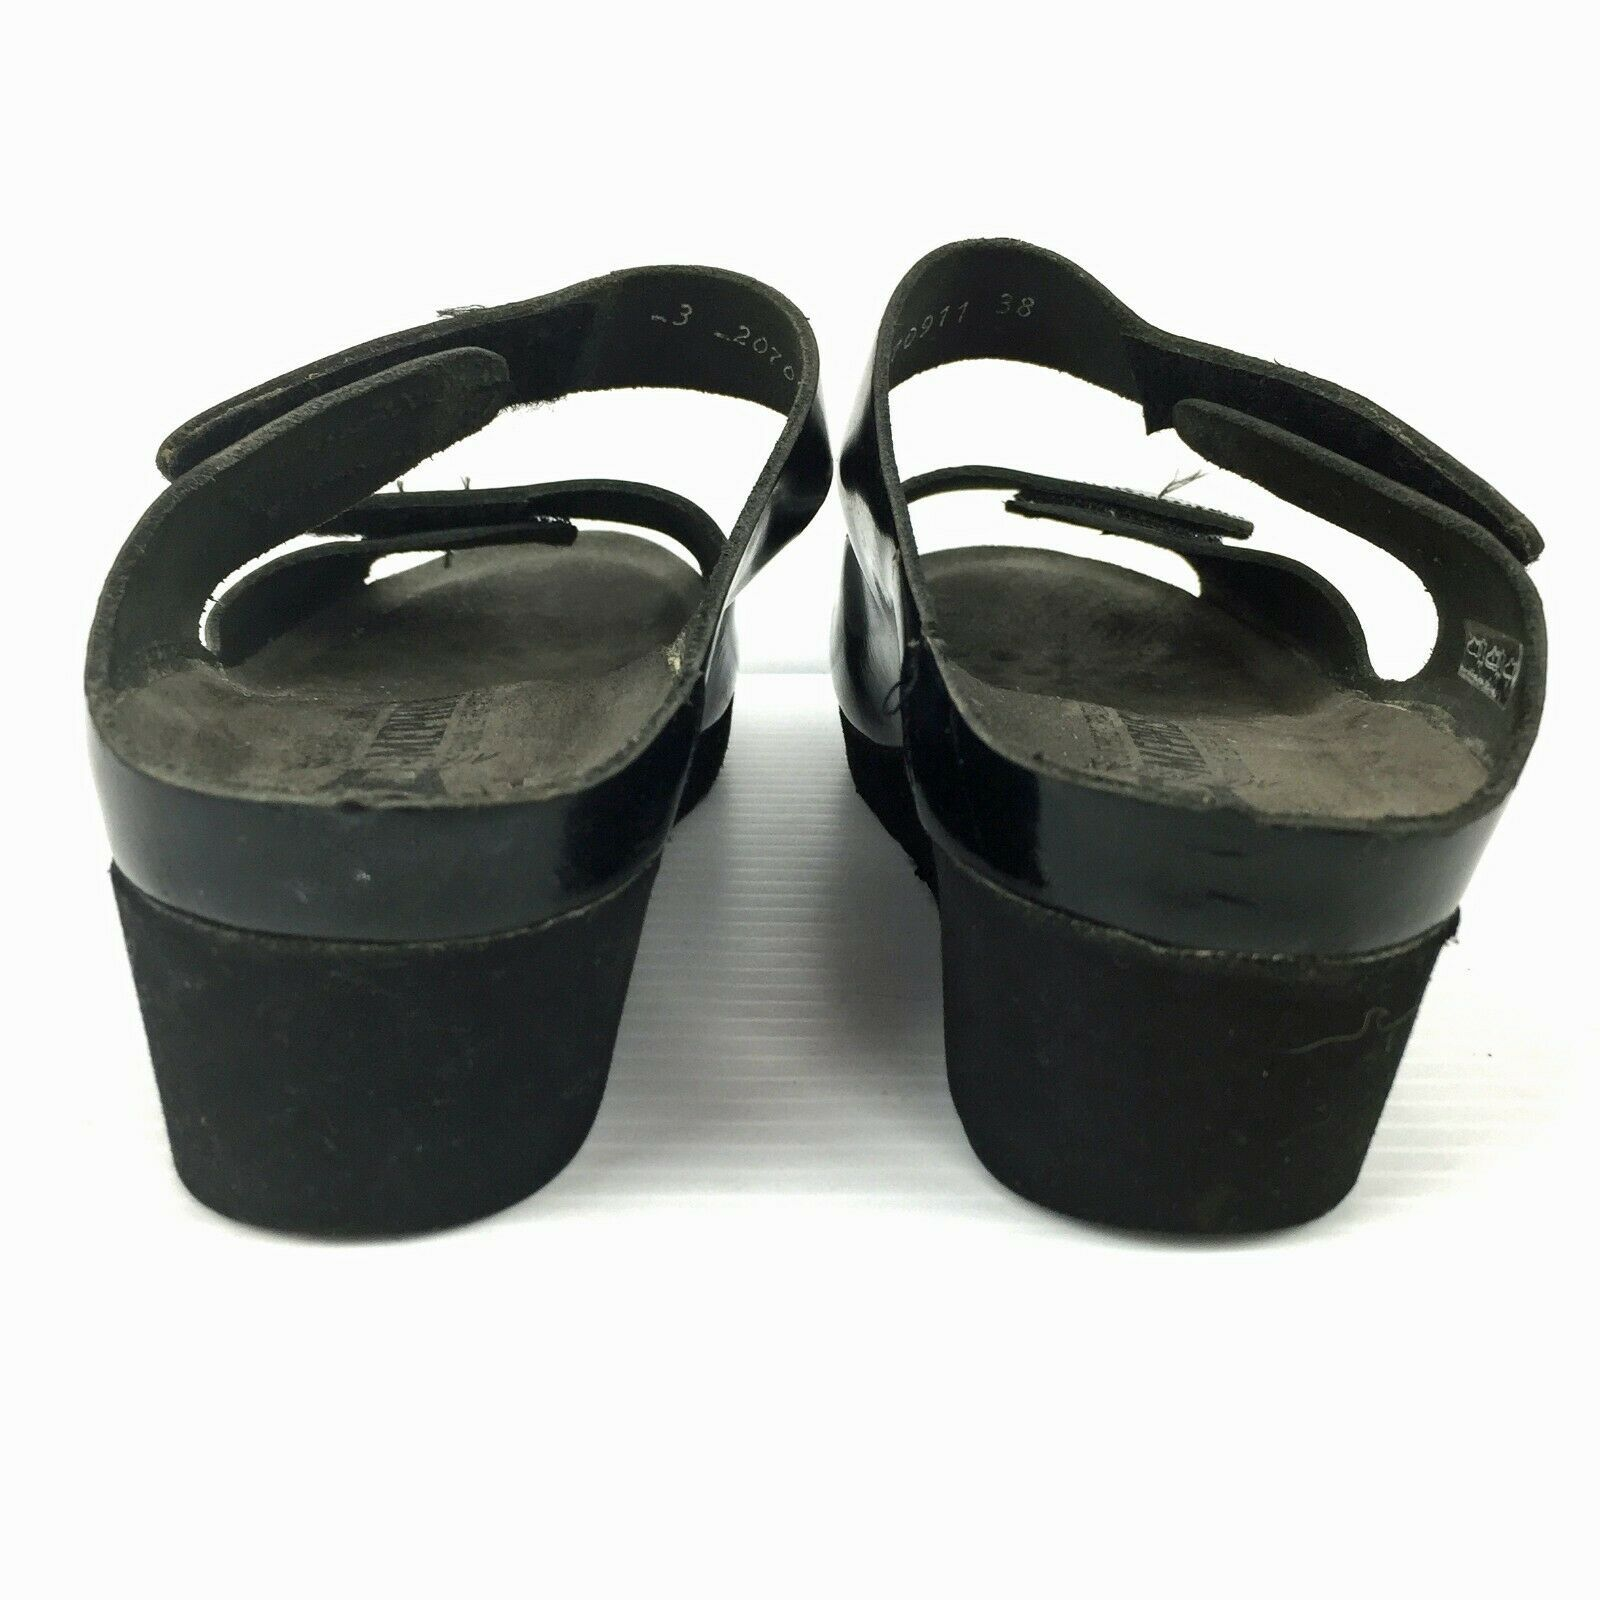 MEPHISTO Air Relax Mobils Black Patent Leather Wedge Slide Sandals Size 7 (US)